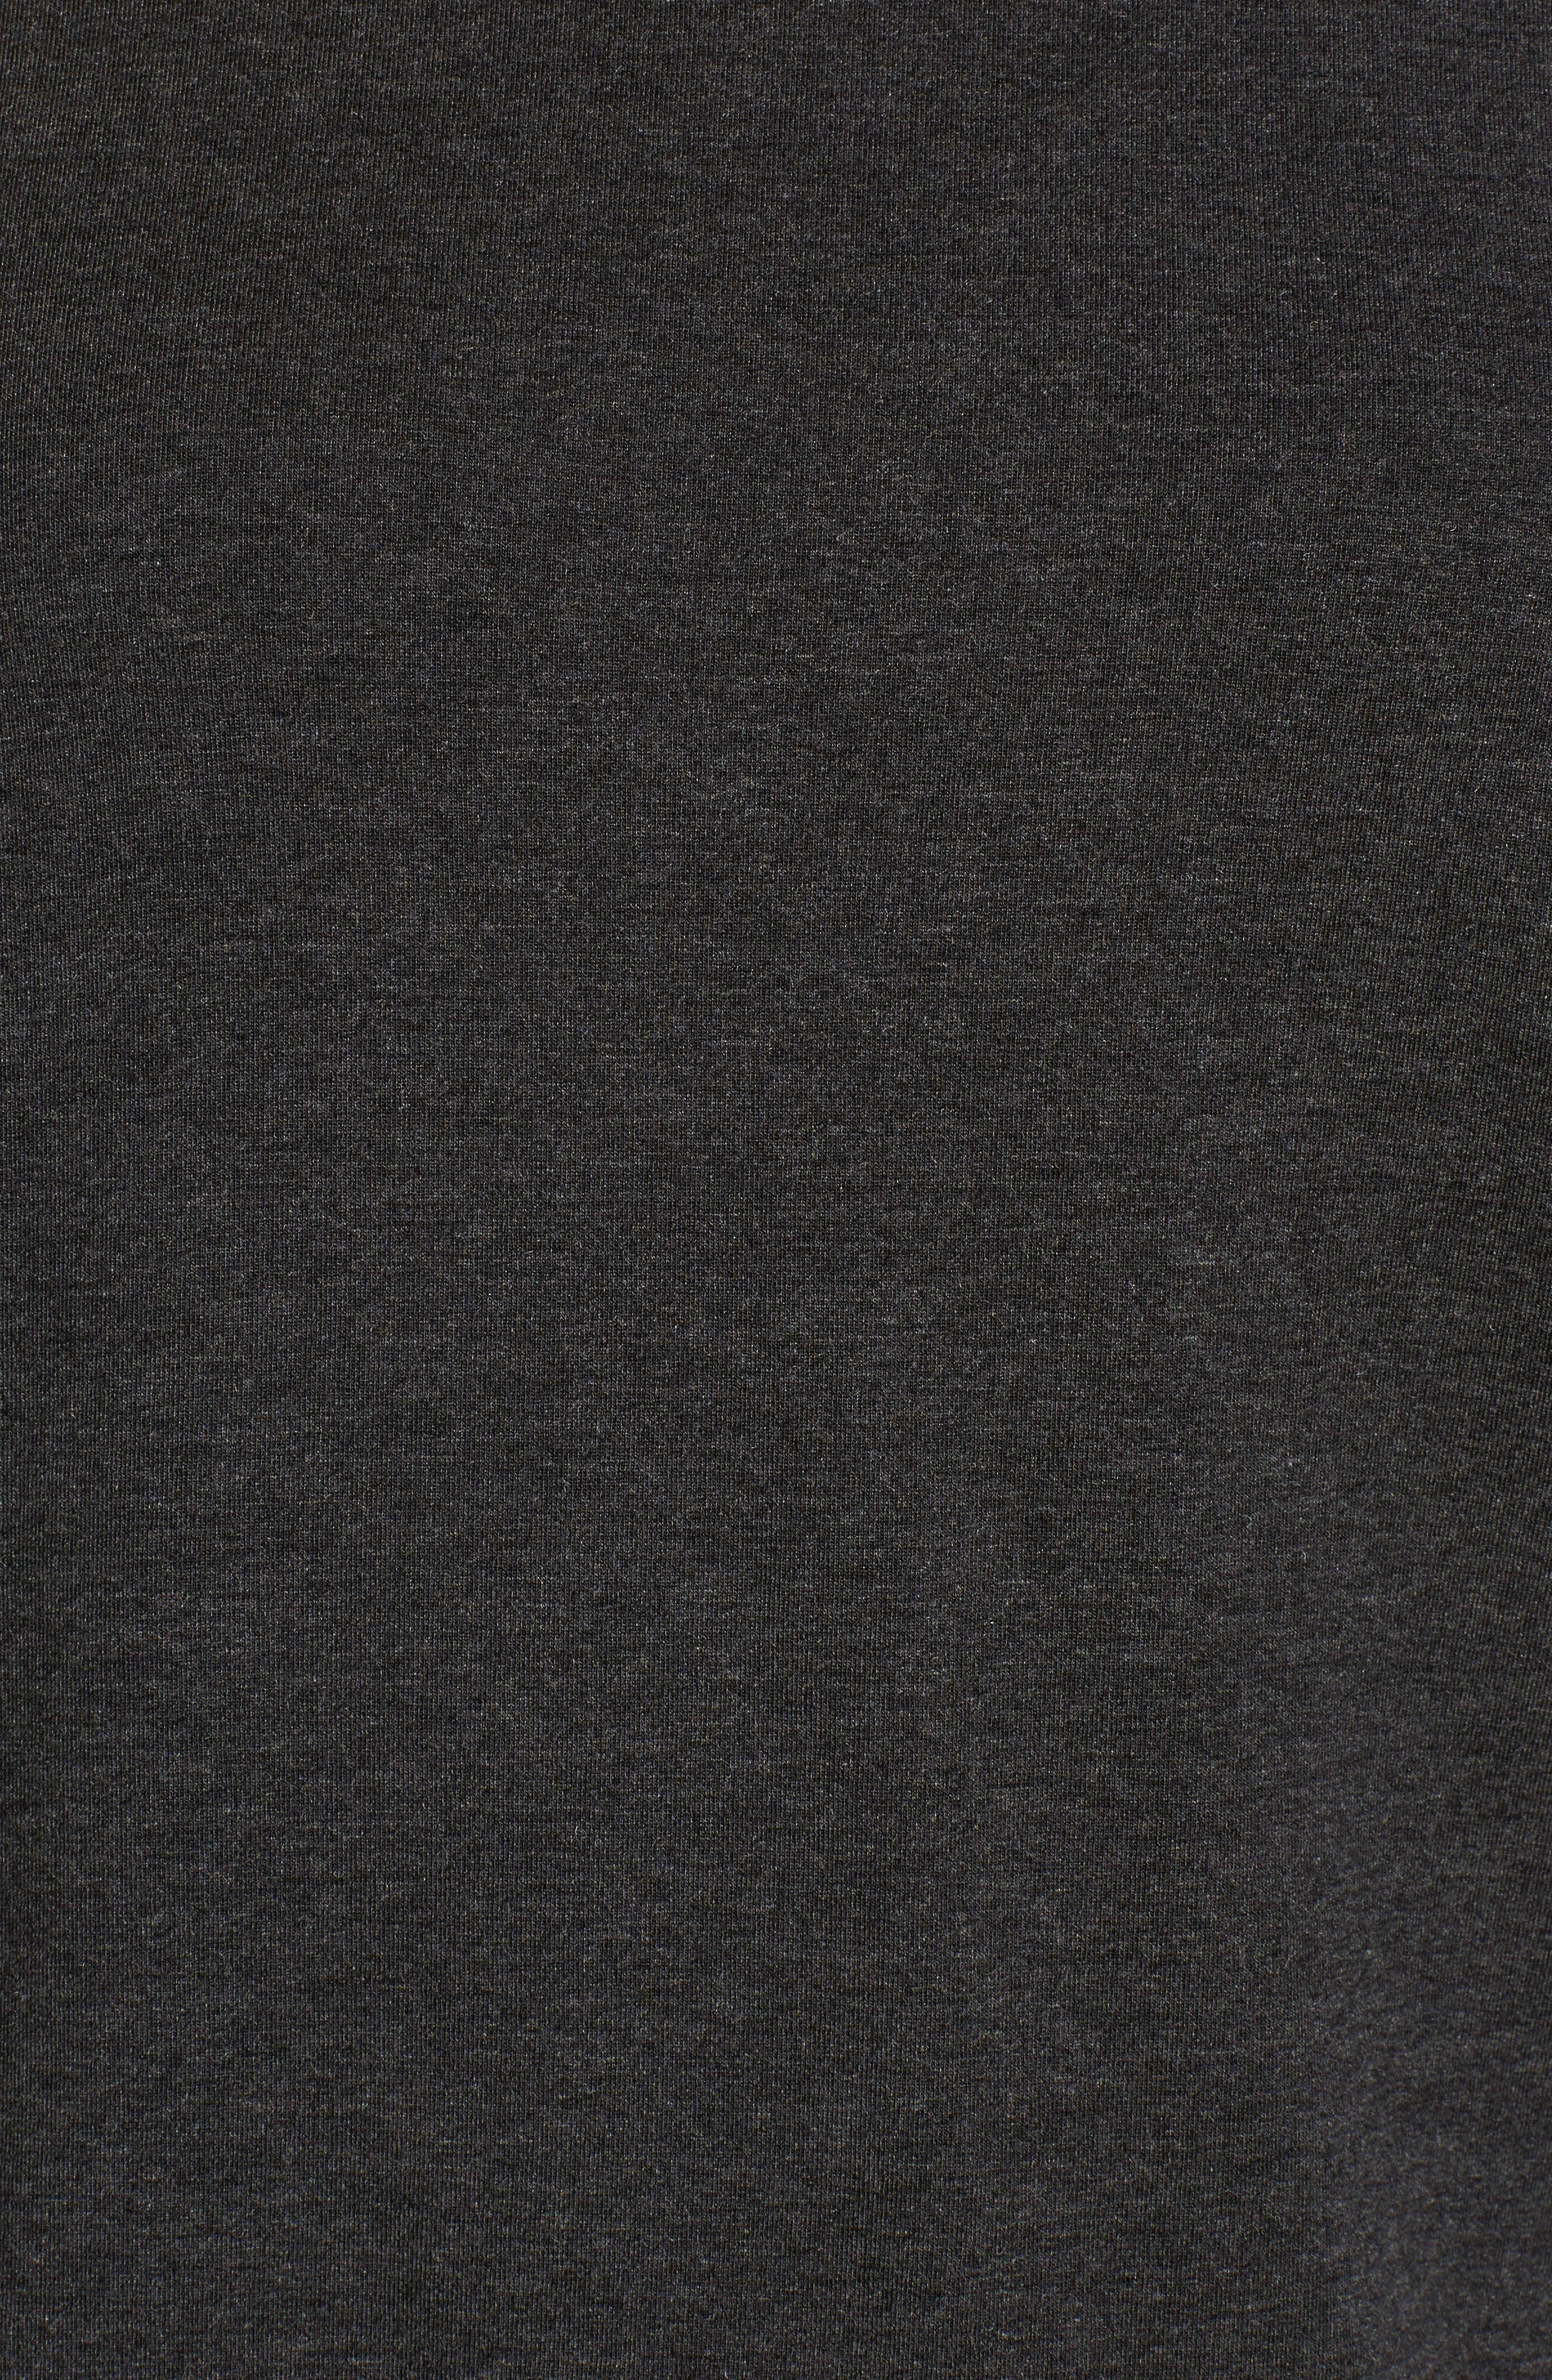 Stretch Tencel<sup>®</sup> Top,                             Alternate thumbnail 9, color,